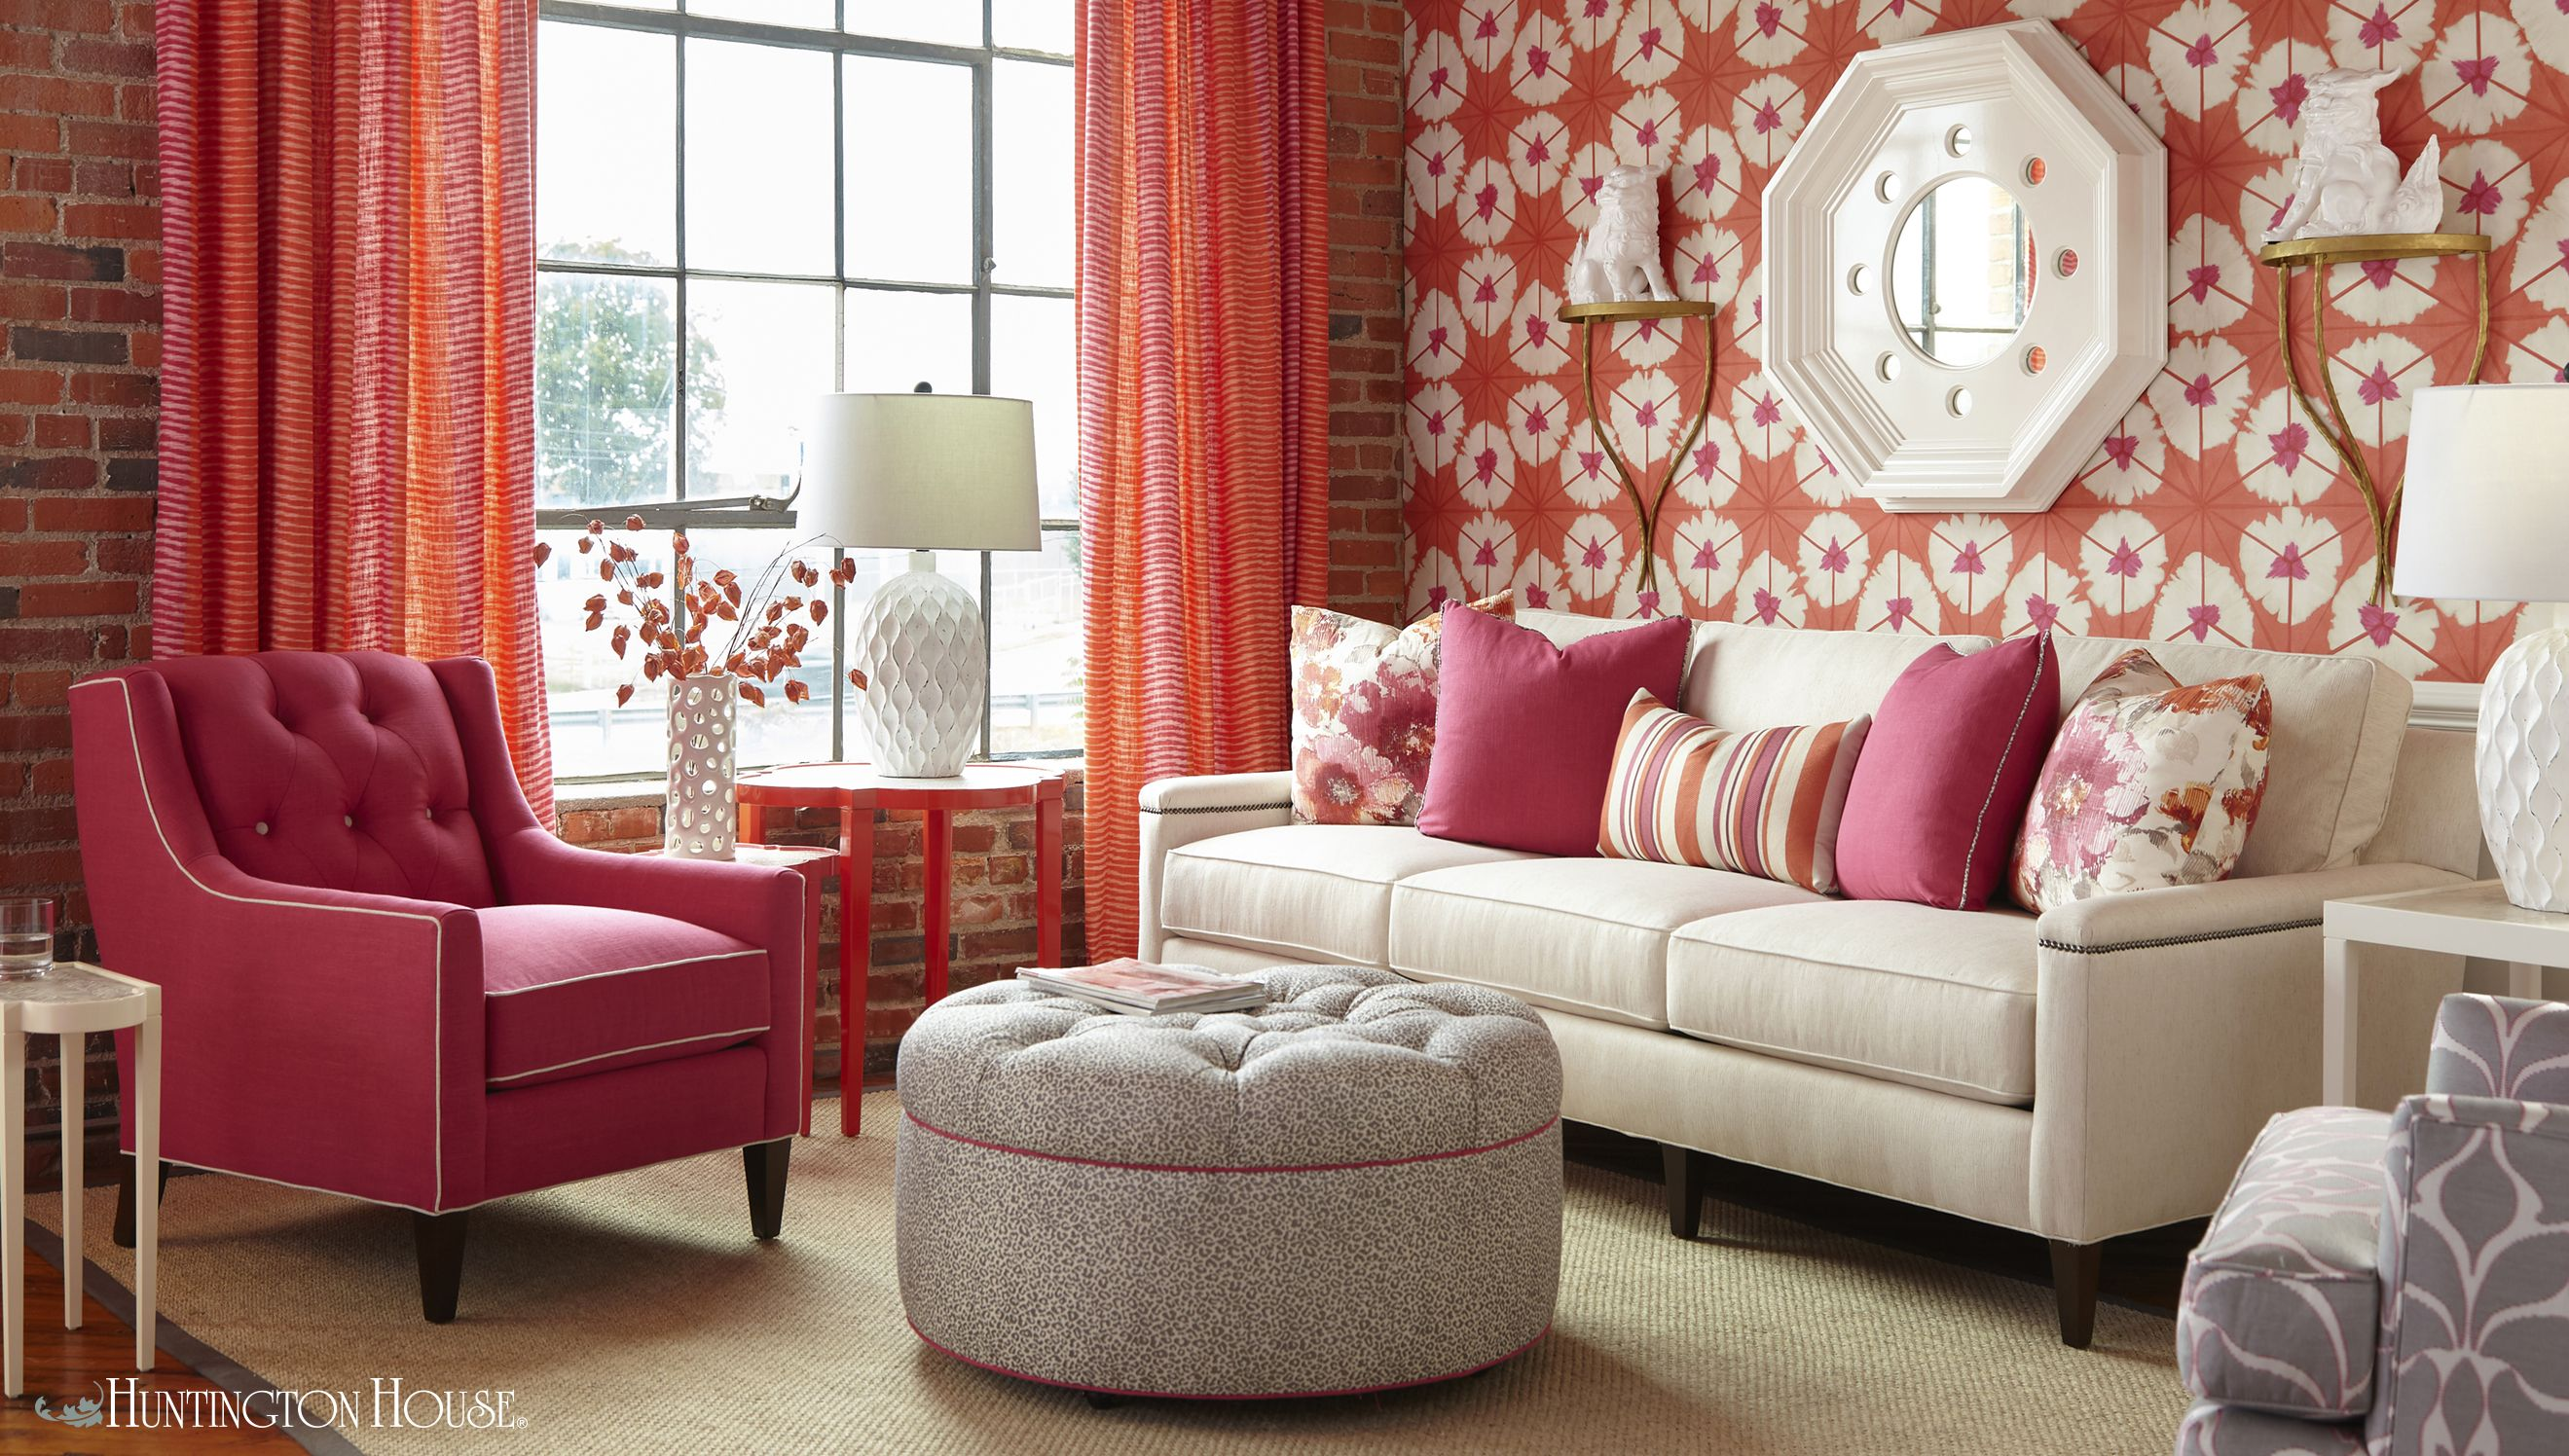 Feeling Bold Try This Gorgeous Citrus Orange And Hot Pink Color Combination To Breathe Some Life Into Your Living Room Shown H Room Sofa Colors Bedroom Decor